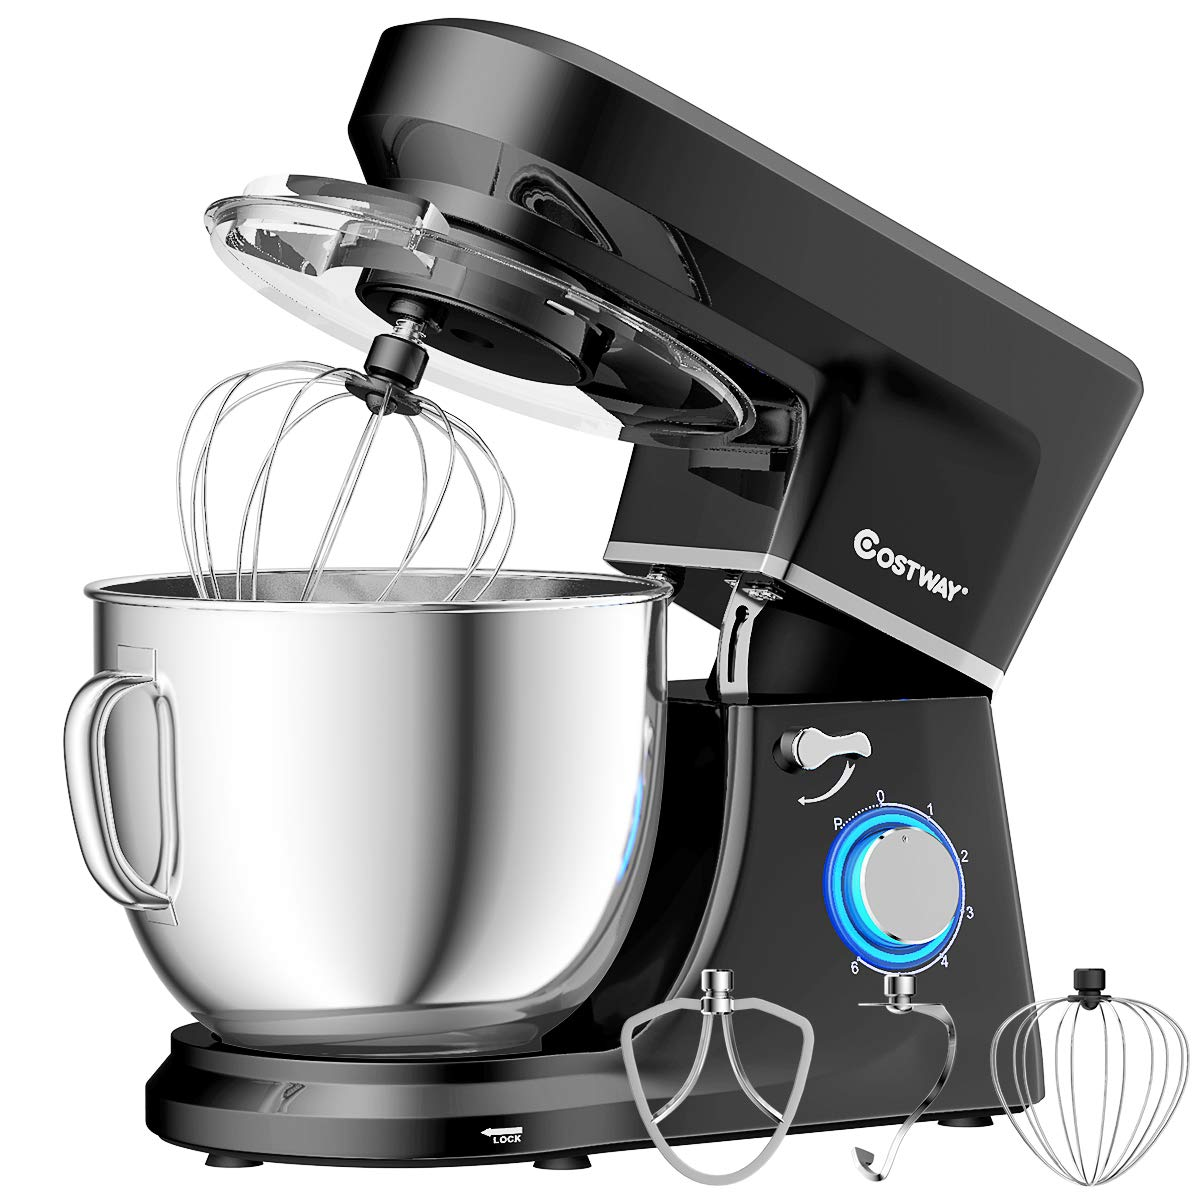 COSTWAY Stand Mixer 660W 6-Speed, Electric Mixer with Stainless Steel Bowl, Tilt-Head Food Mixer, High Performance Kitchen Electric Mixer Dough Mixer w 3 Different Attachments,7.5 Quart Bowl , Low Noise, Whisk Black-update